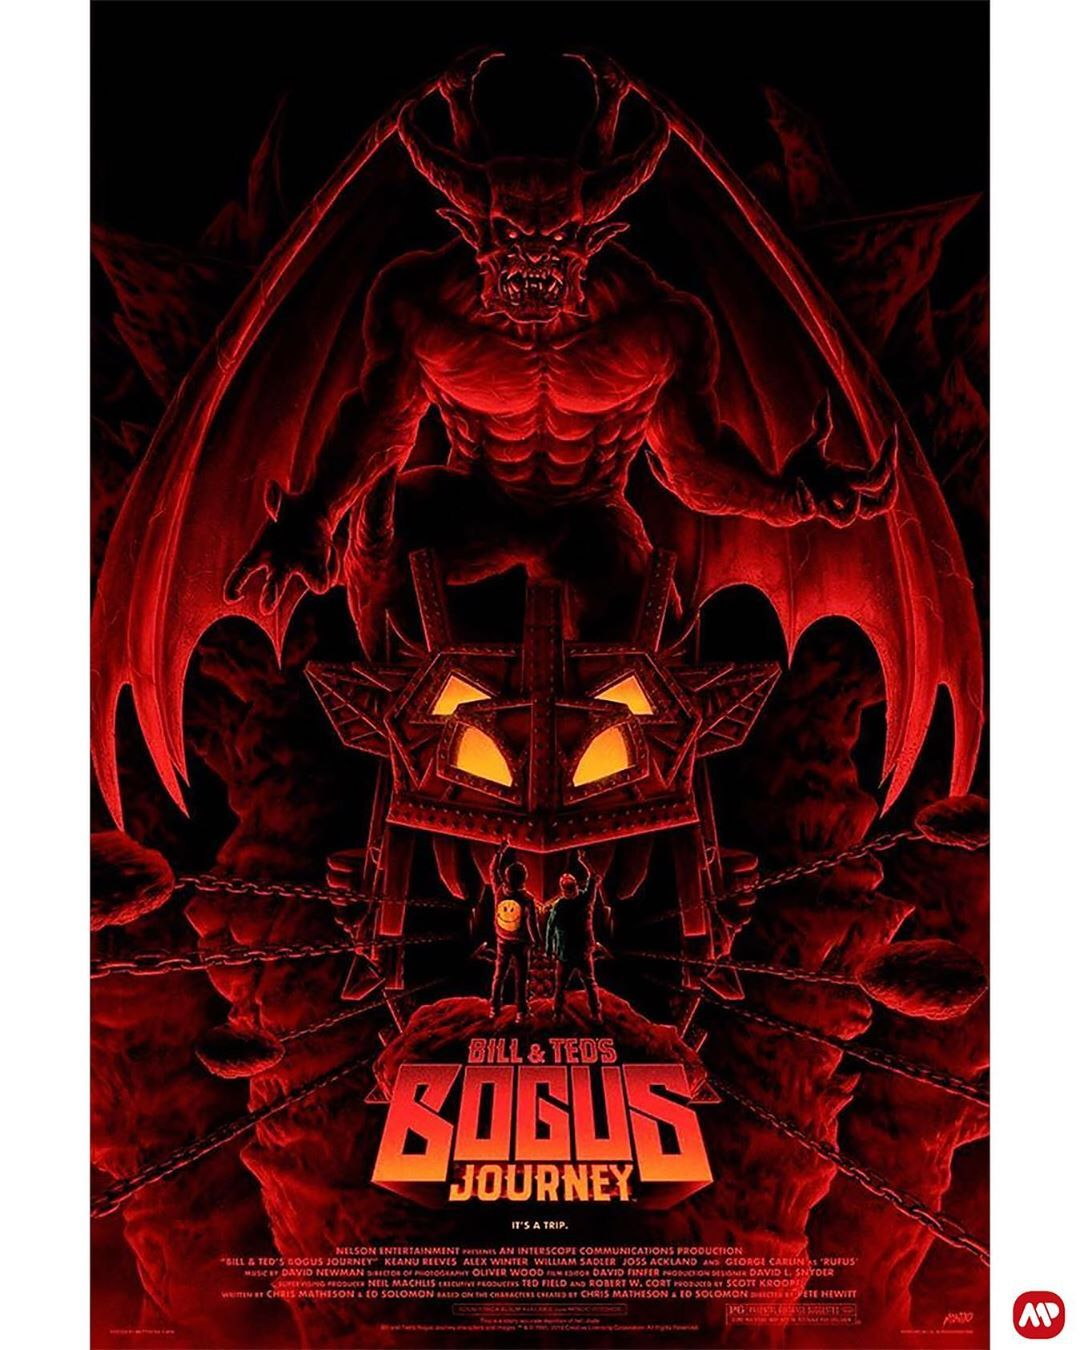 Bill Ted S Bogus Journey By Matty Ryan Tobin Mattryan Alternative Movie Posters Best Movie Posters Movie Poster Art